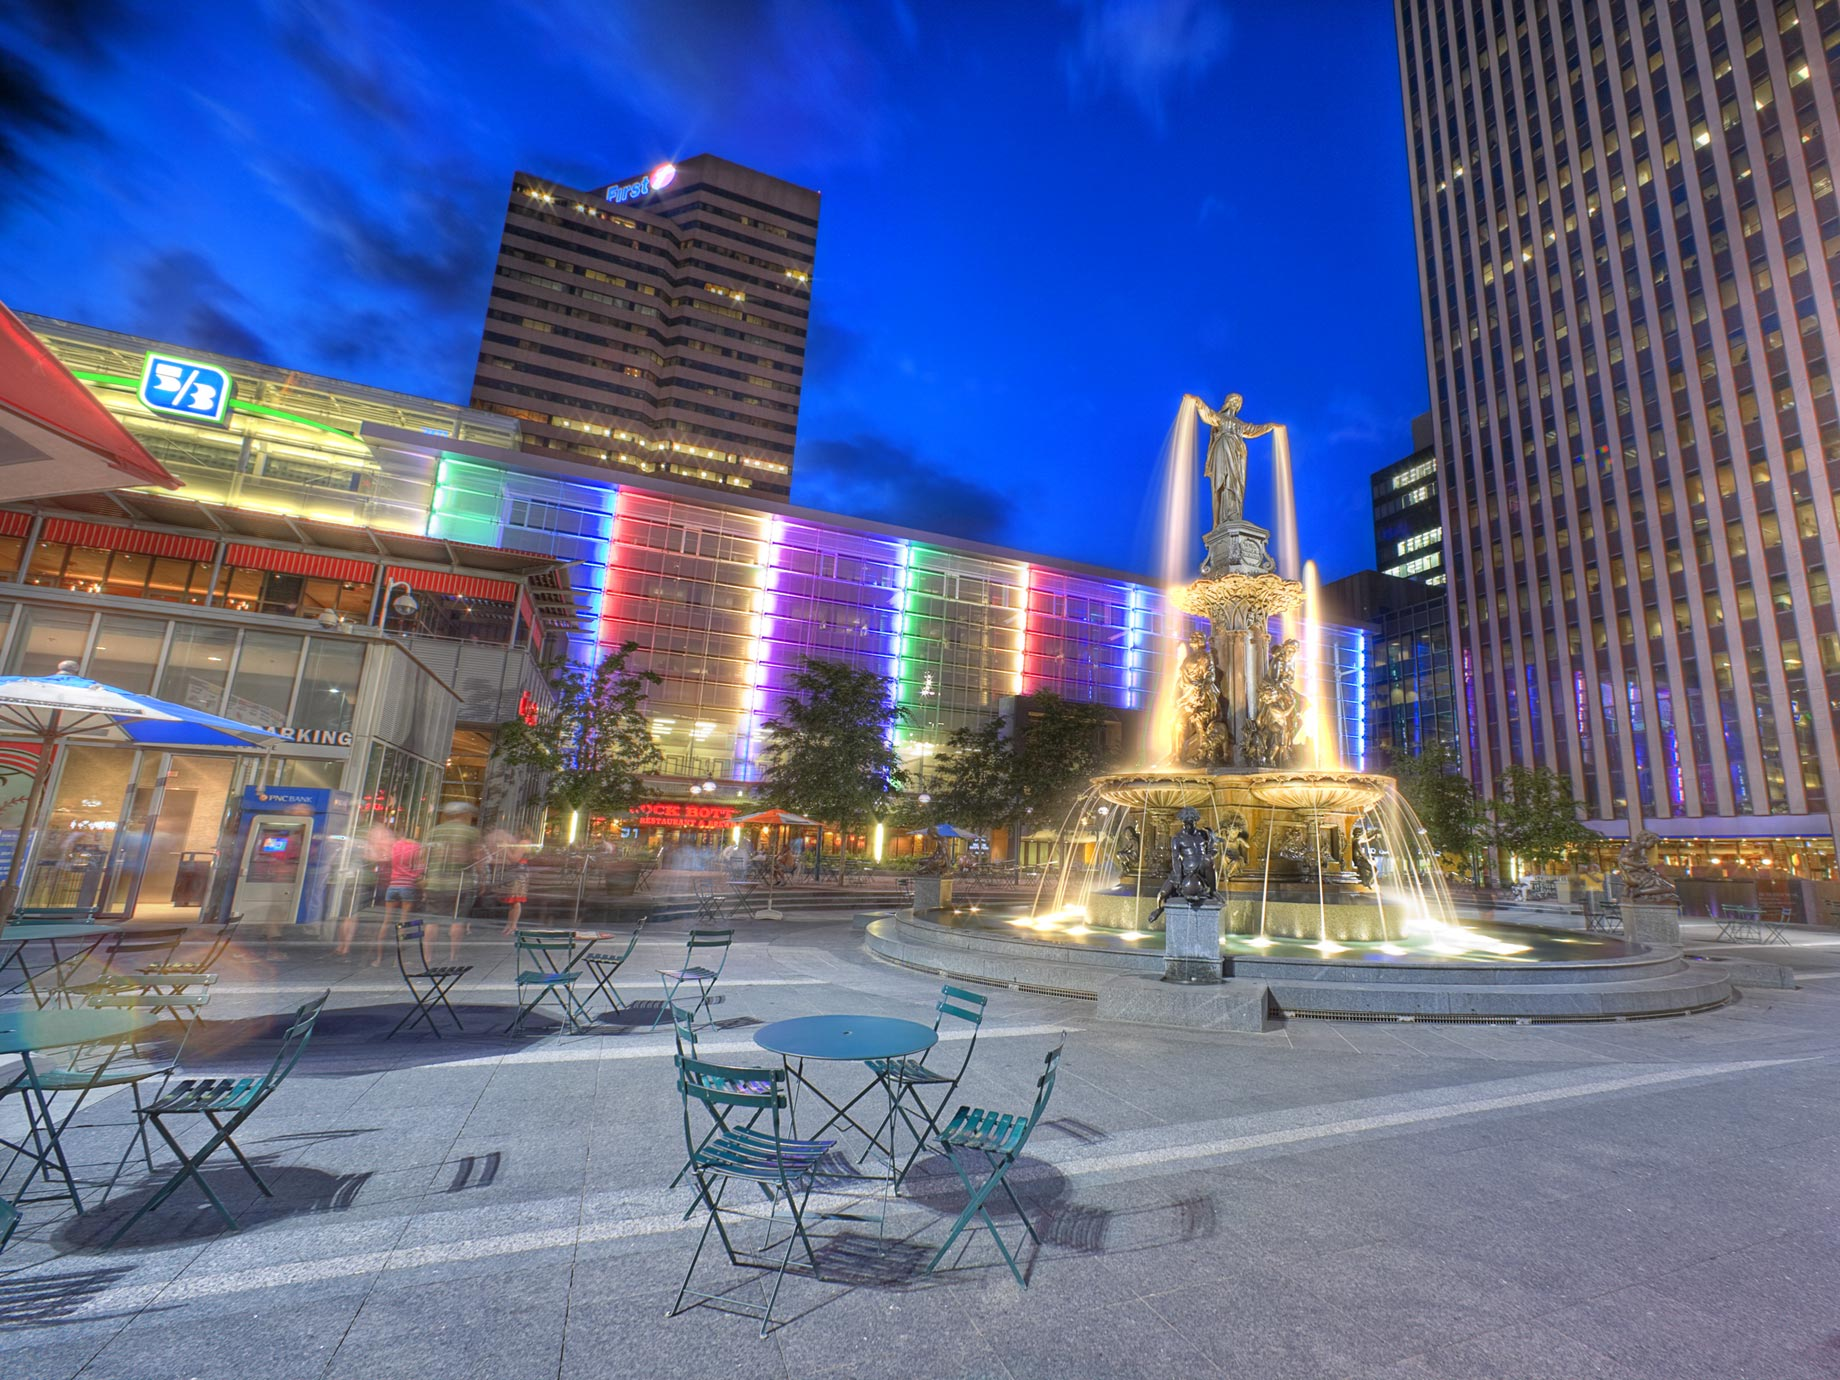 Fountain Square wide angle